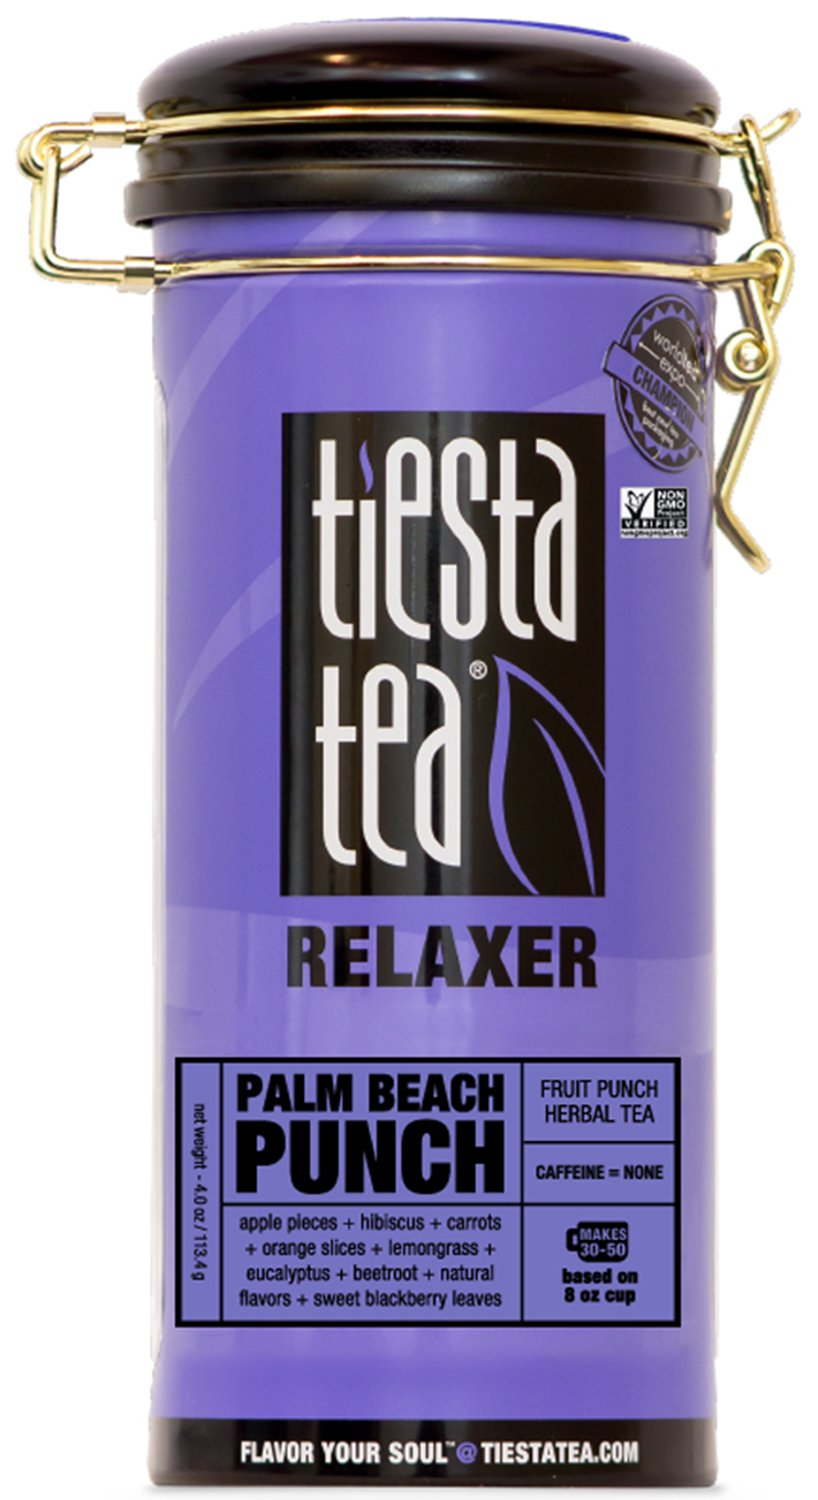 Fruit Punch Herbal Tea | PALM BEACH PUNCH 4 Ounce Tin by TIESTA TEA | Caffeine Free | Loose Leaf Herbal Tea Relaxer Blend | Non-GMO